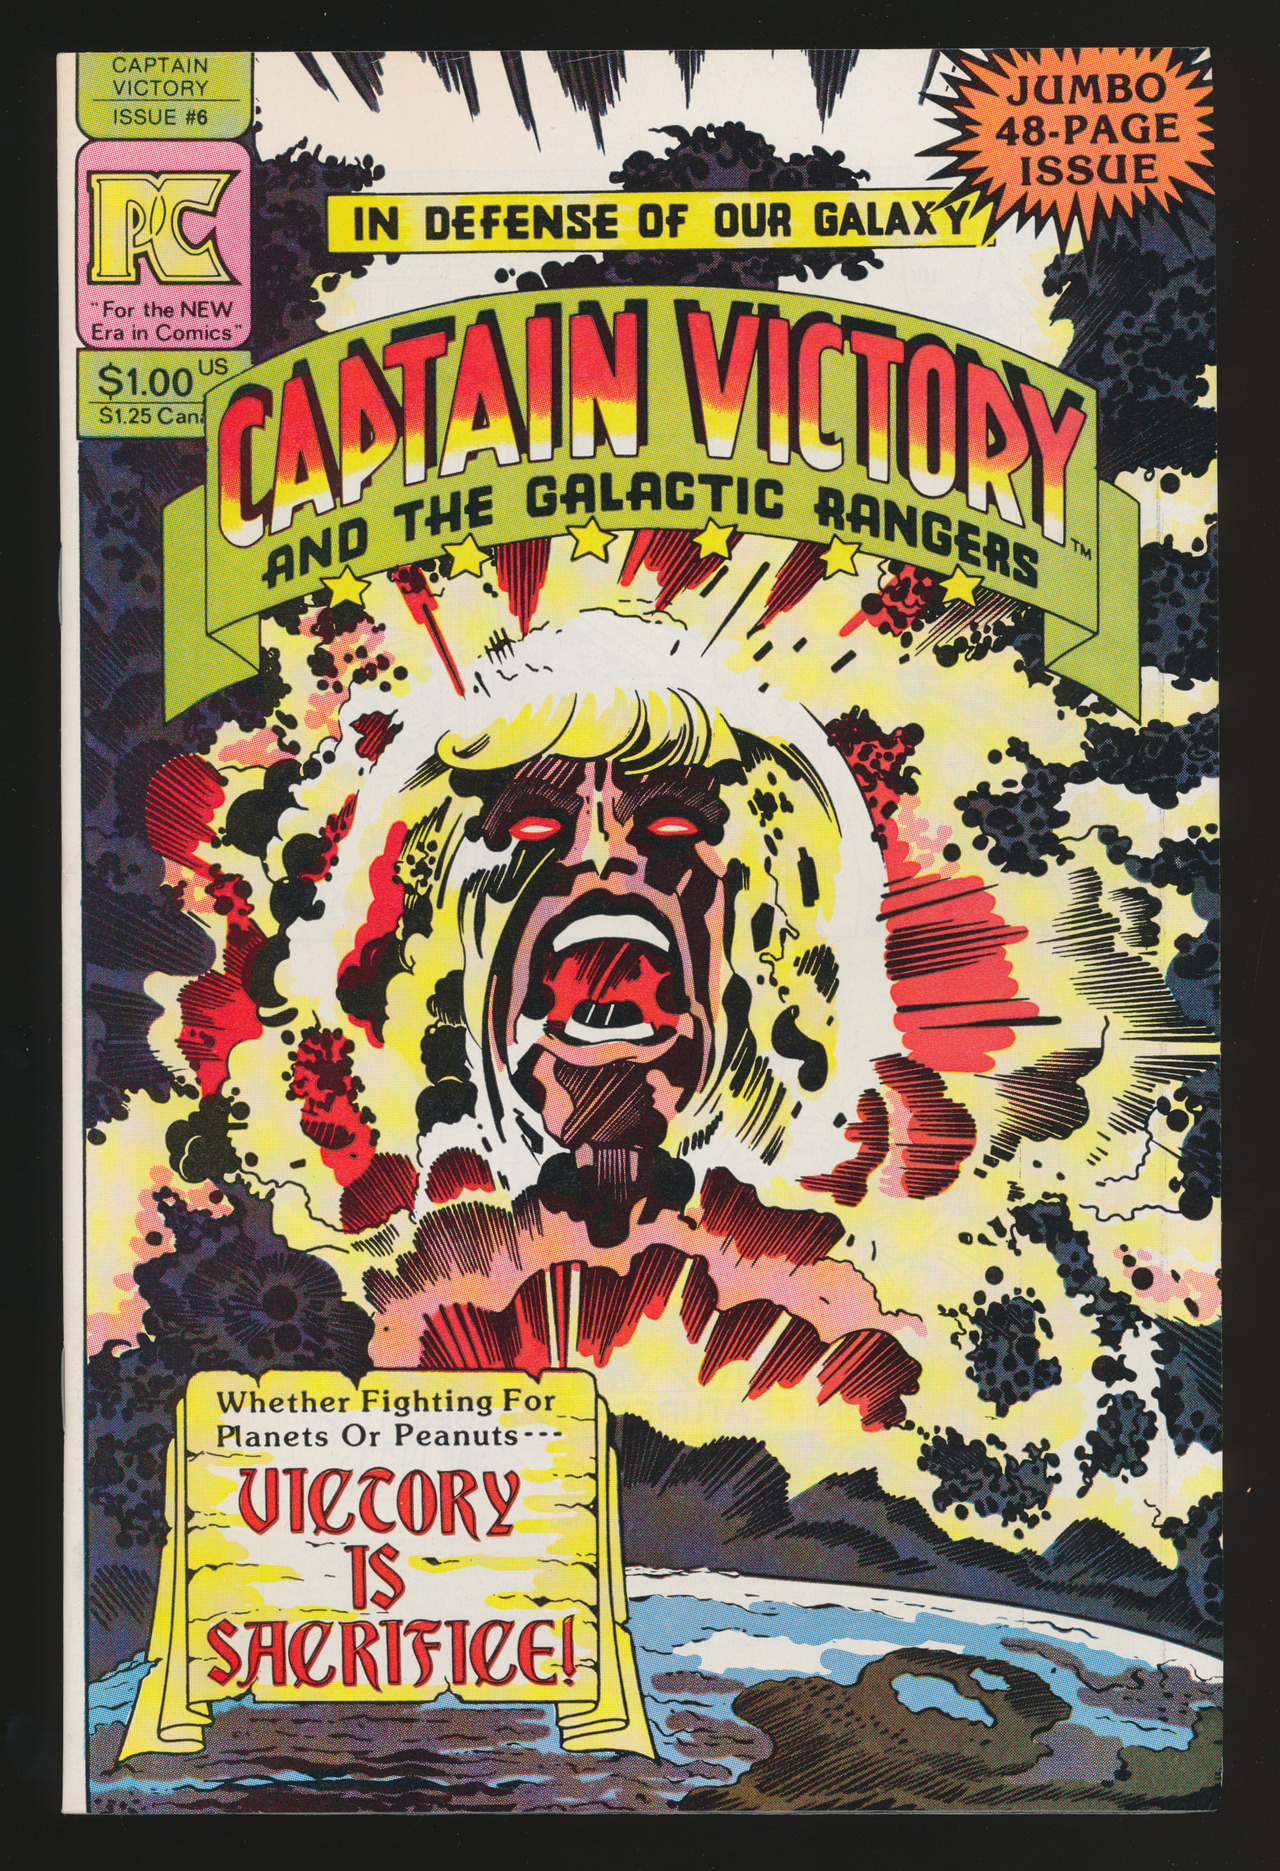 Captain Victory and the Galactic Rangers #6(Sep. 1982)